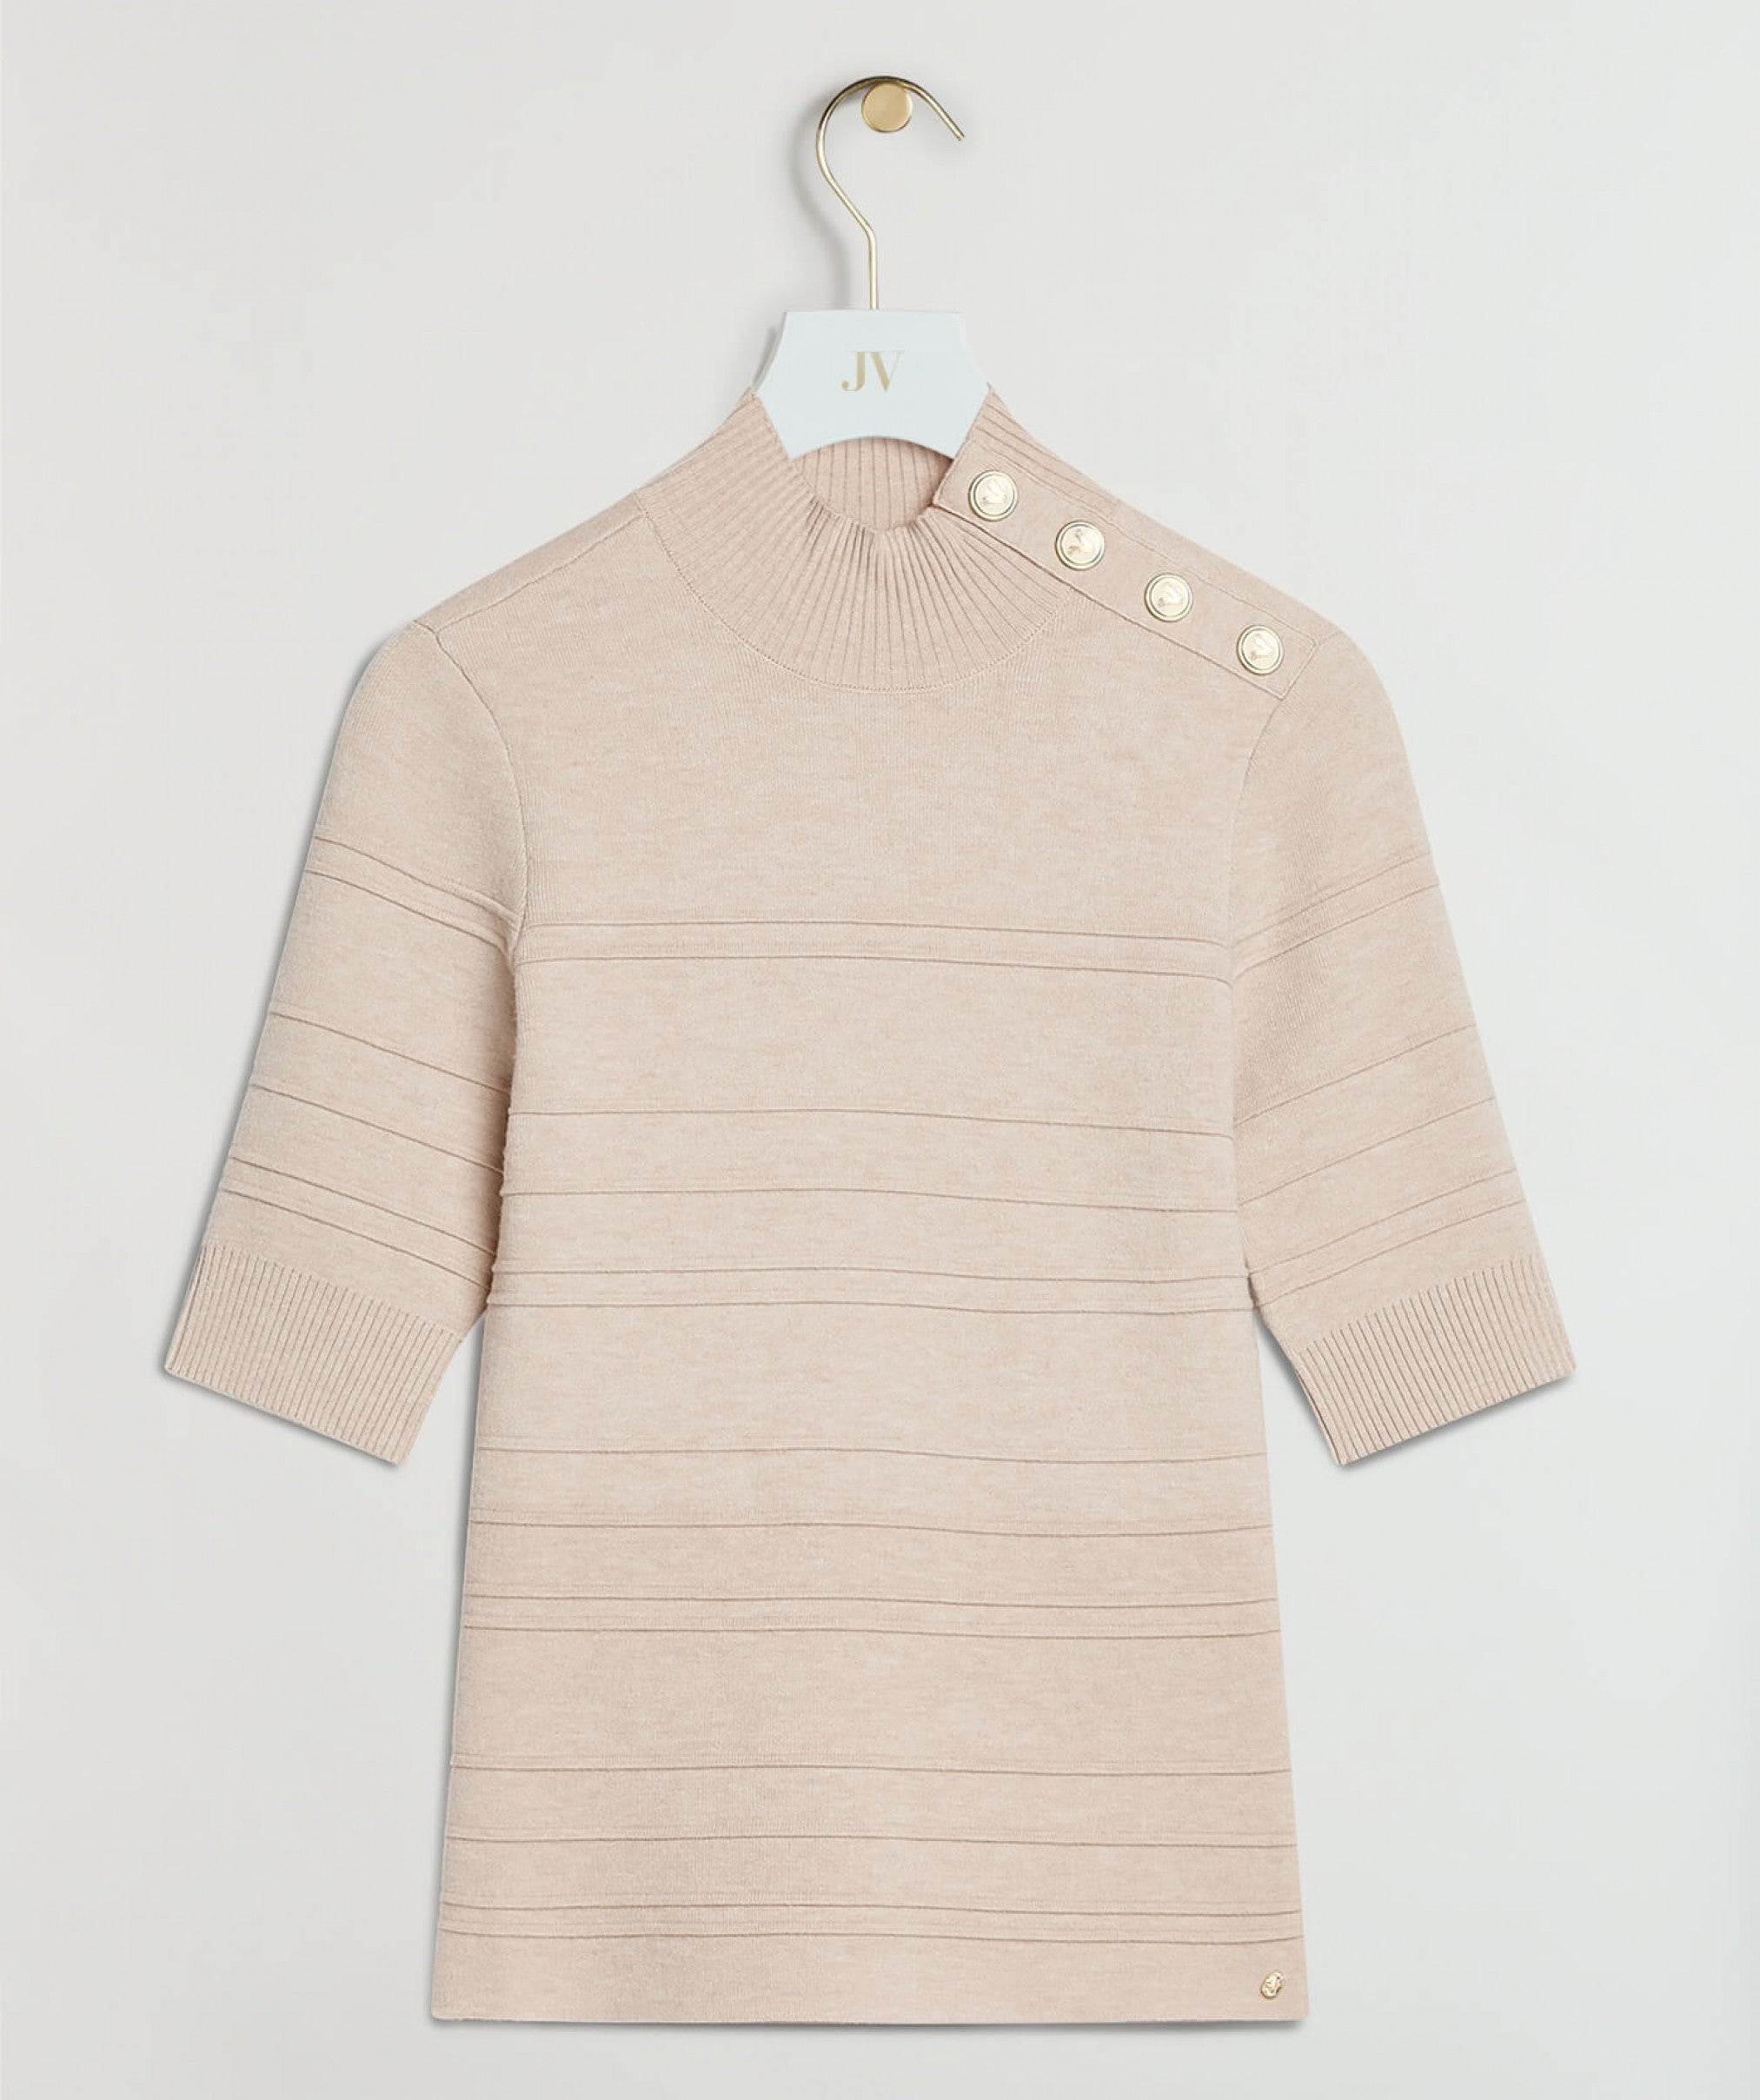 JOSH V - High Neck Knit Soleste - Beige - Art.Code: 44468618